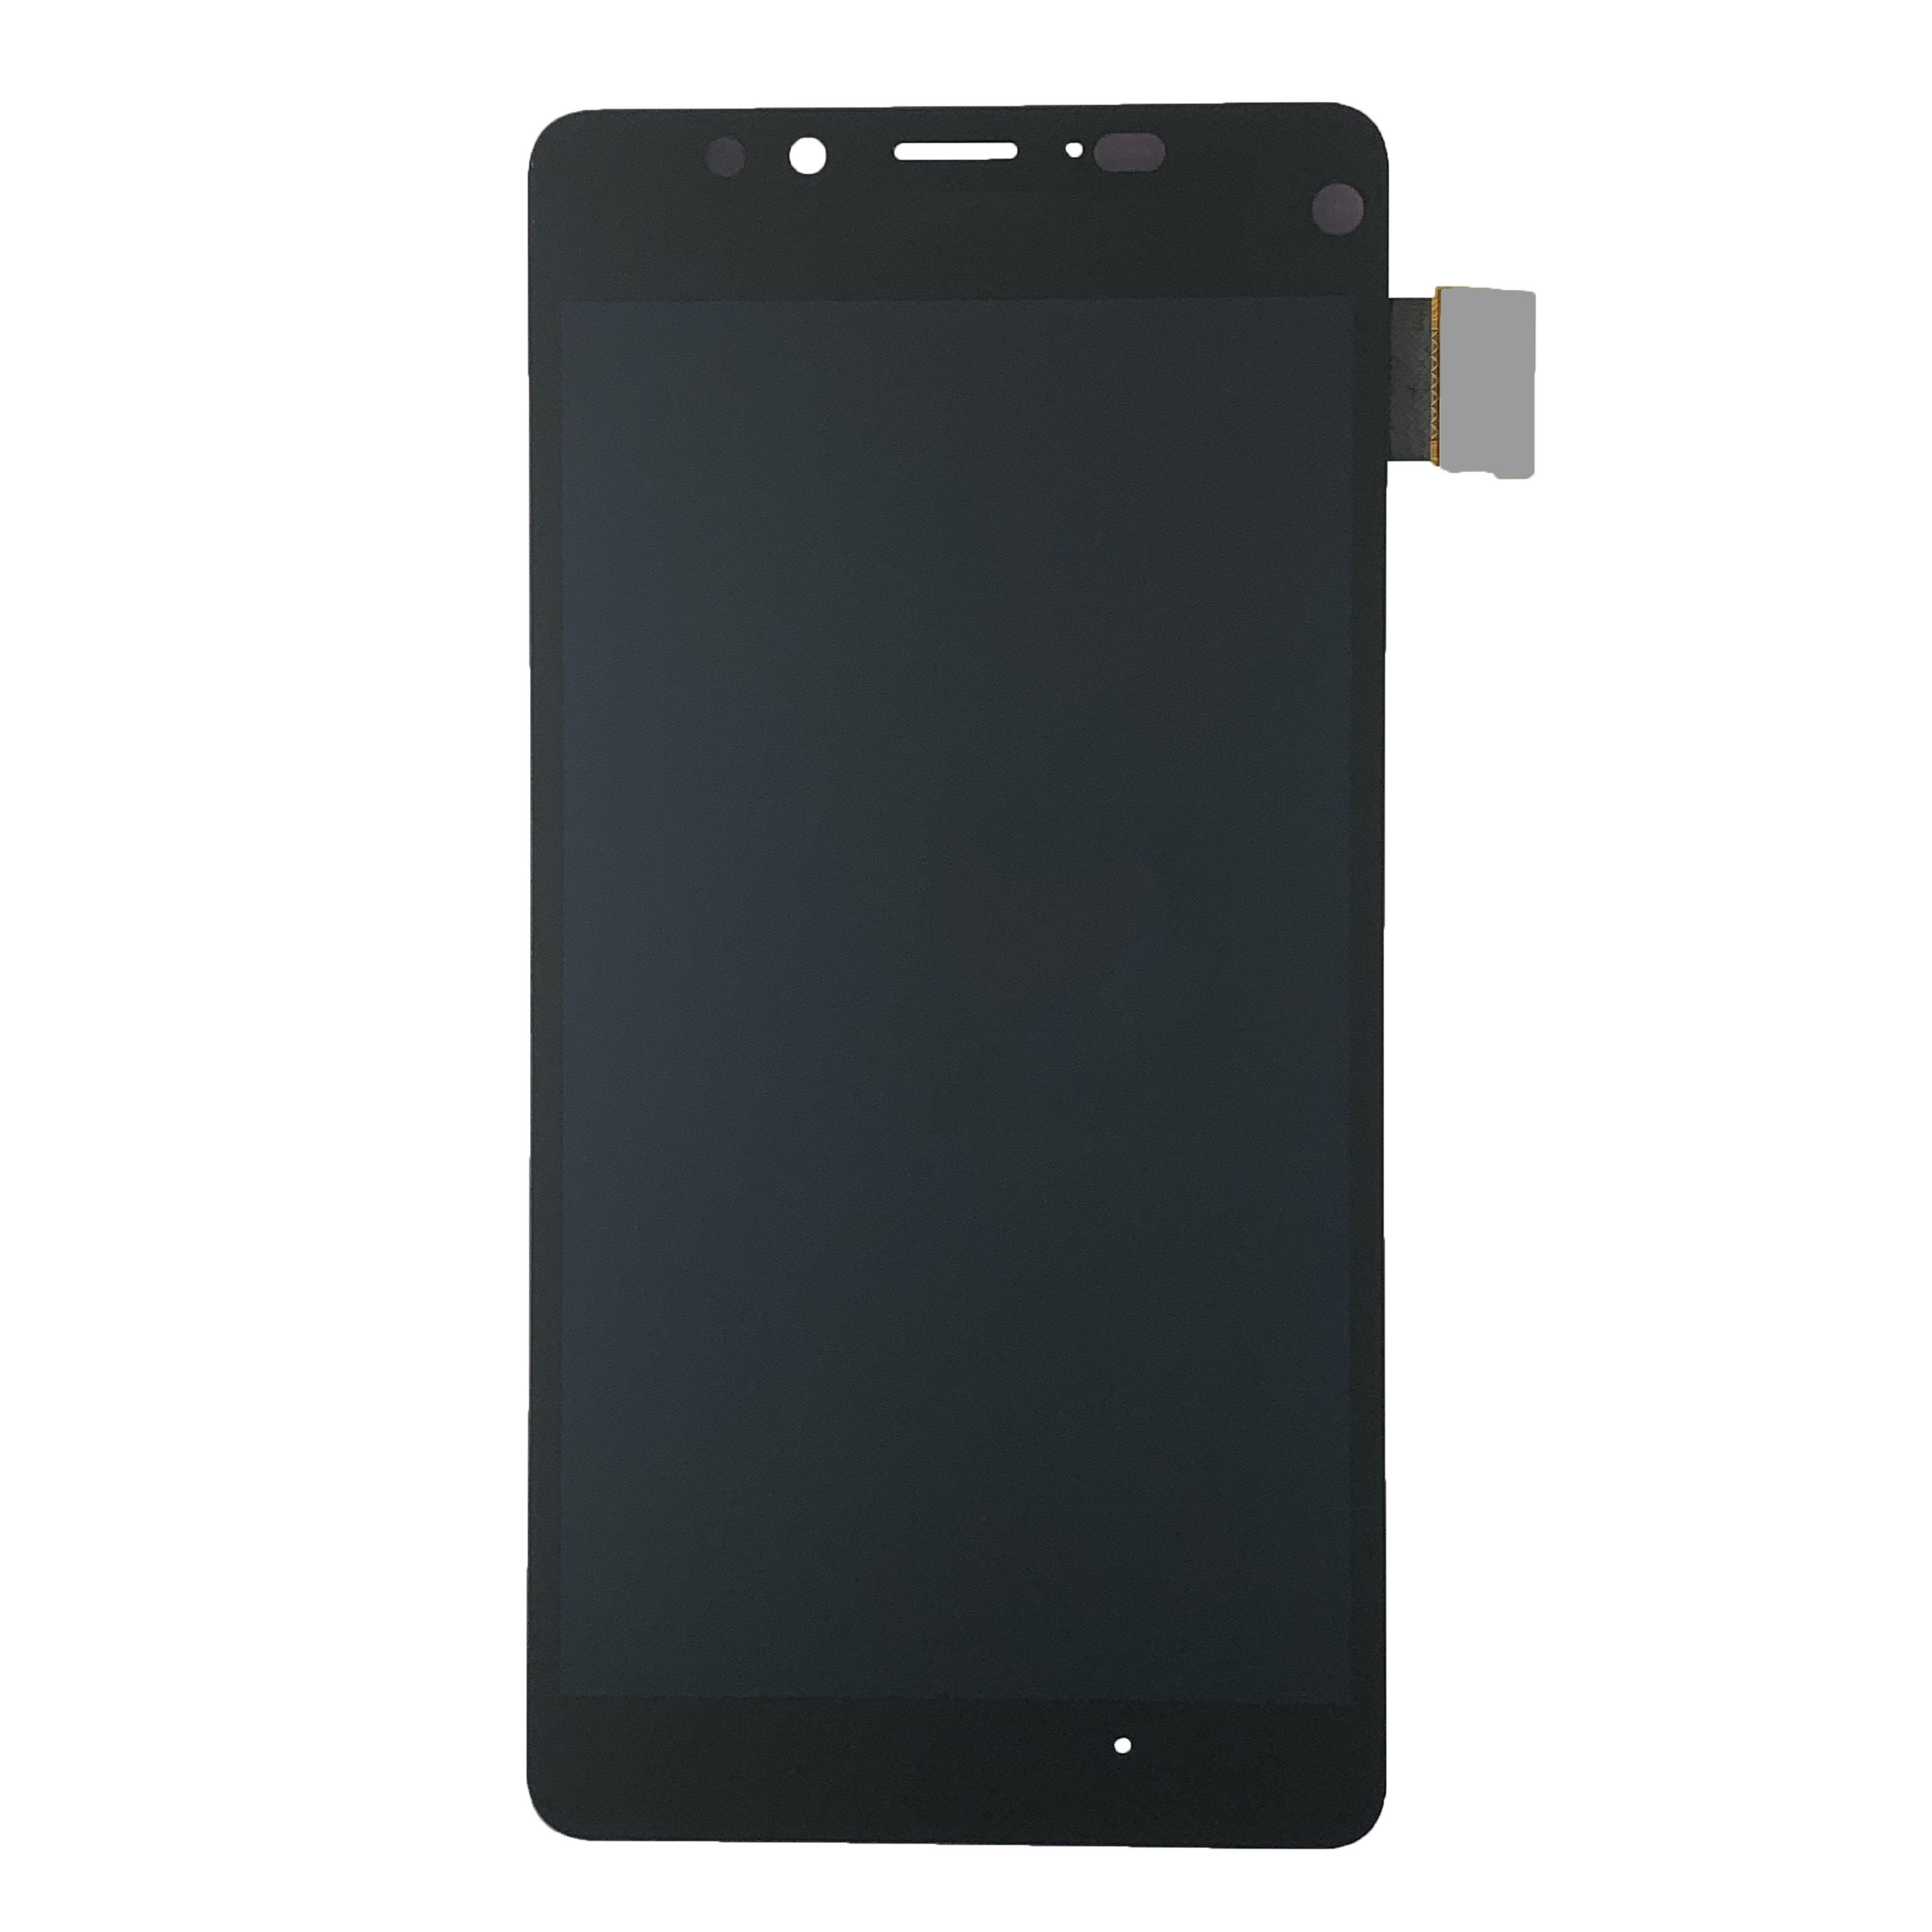 Suitable for NOKIALumia <font><b>950</b></font> RM-1104 RM-1118 brand new original LCD screen, touch screen digitizer component repair <font><b>parts</b></font>, with d image